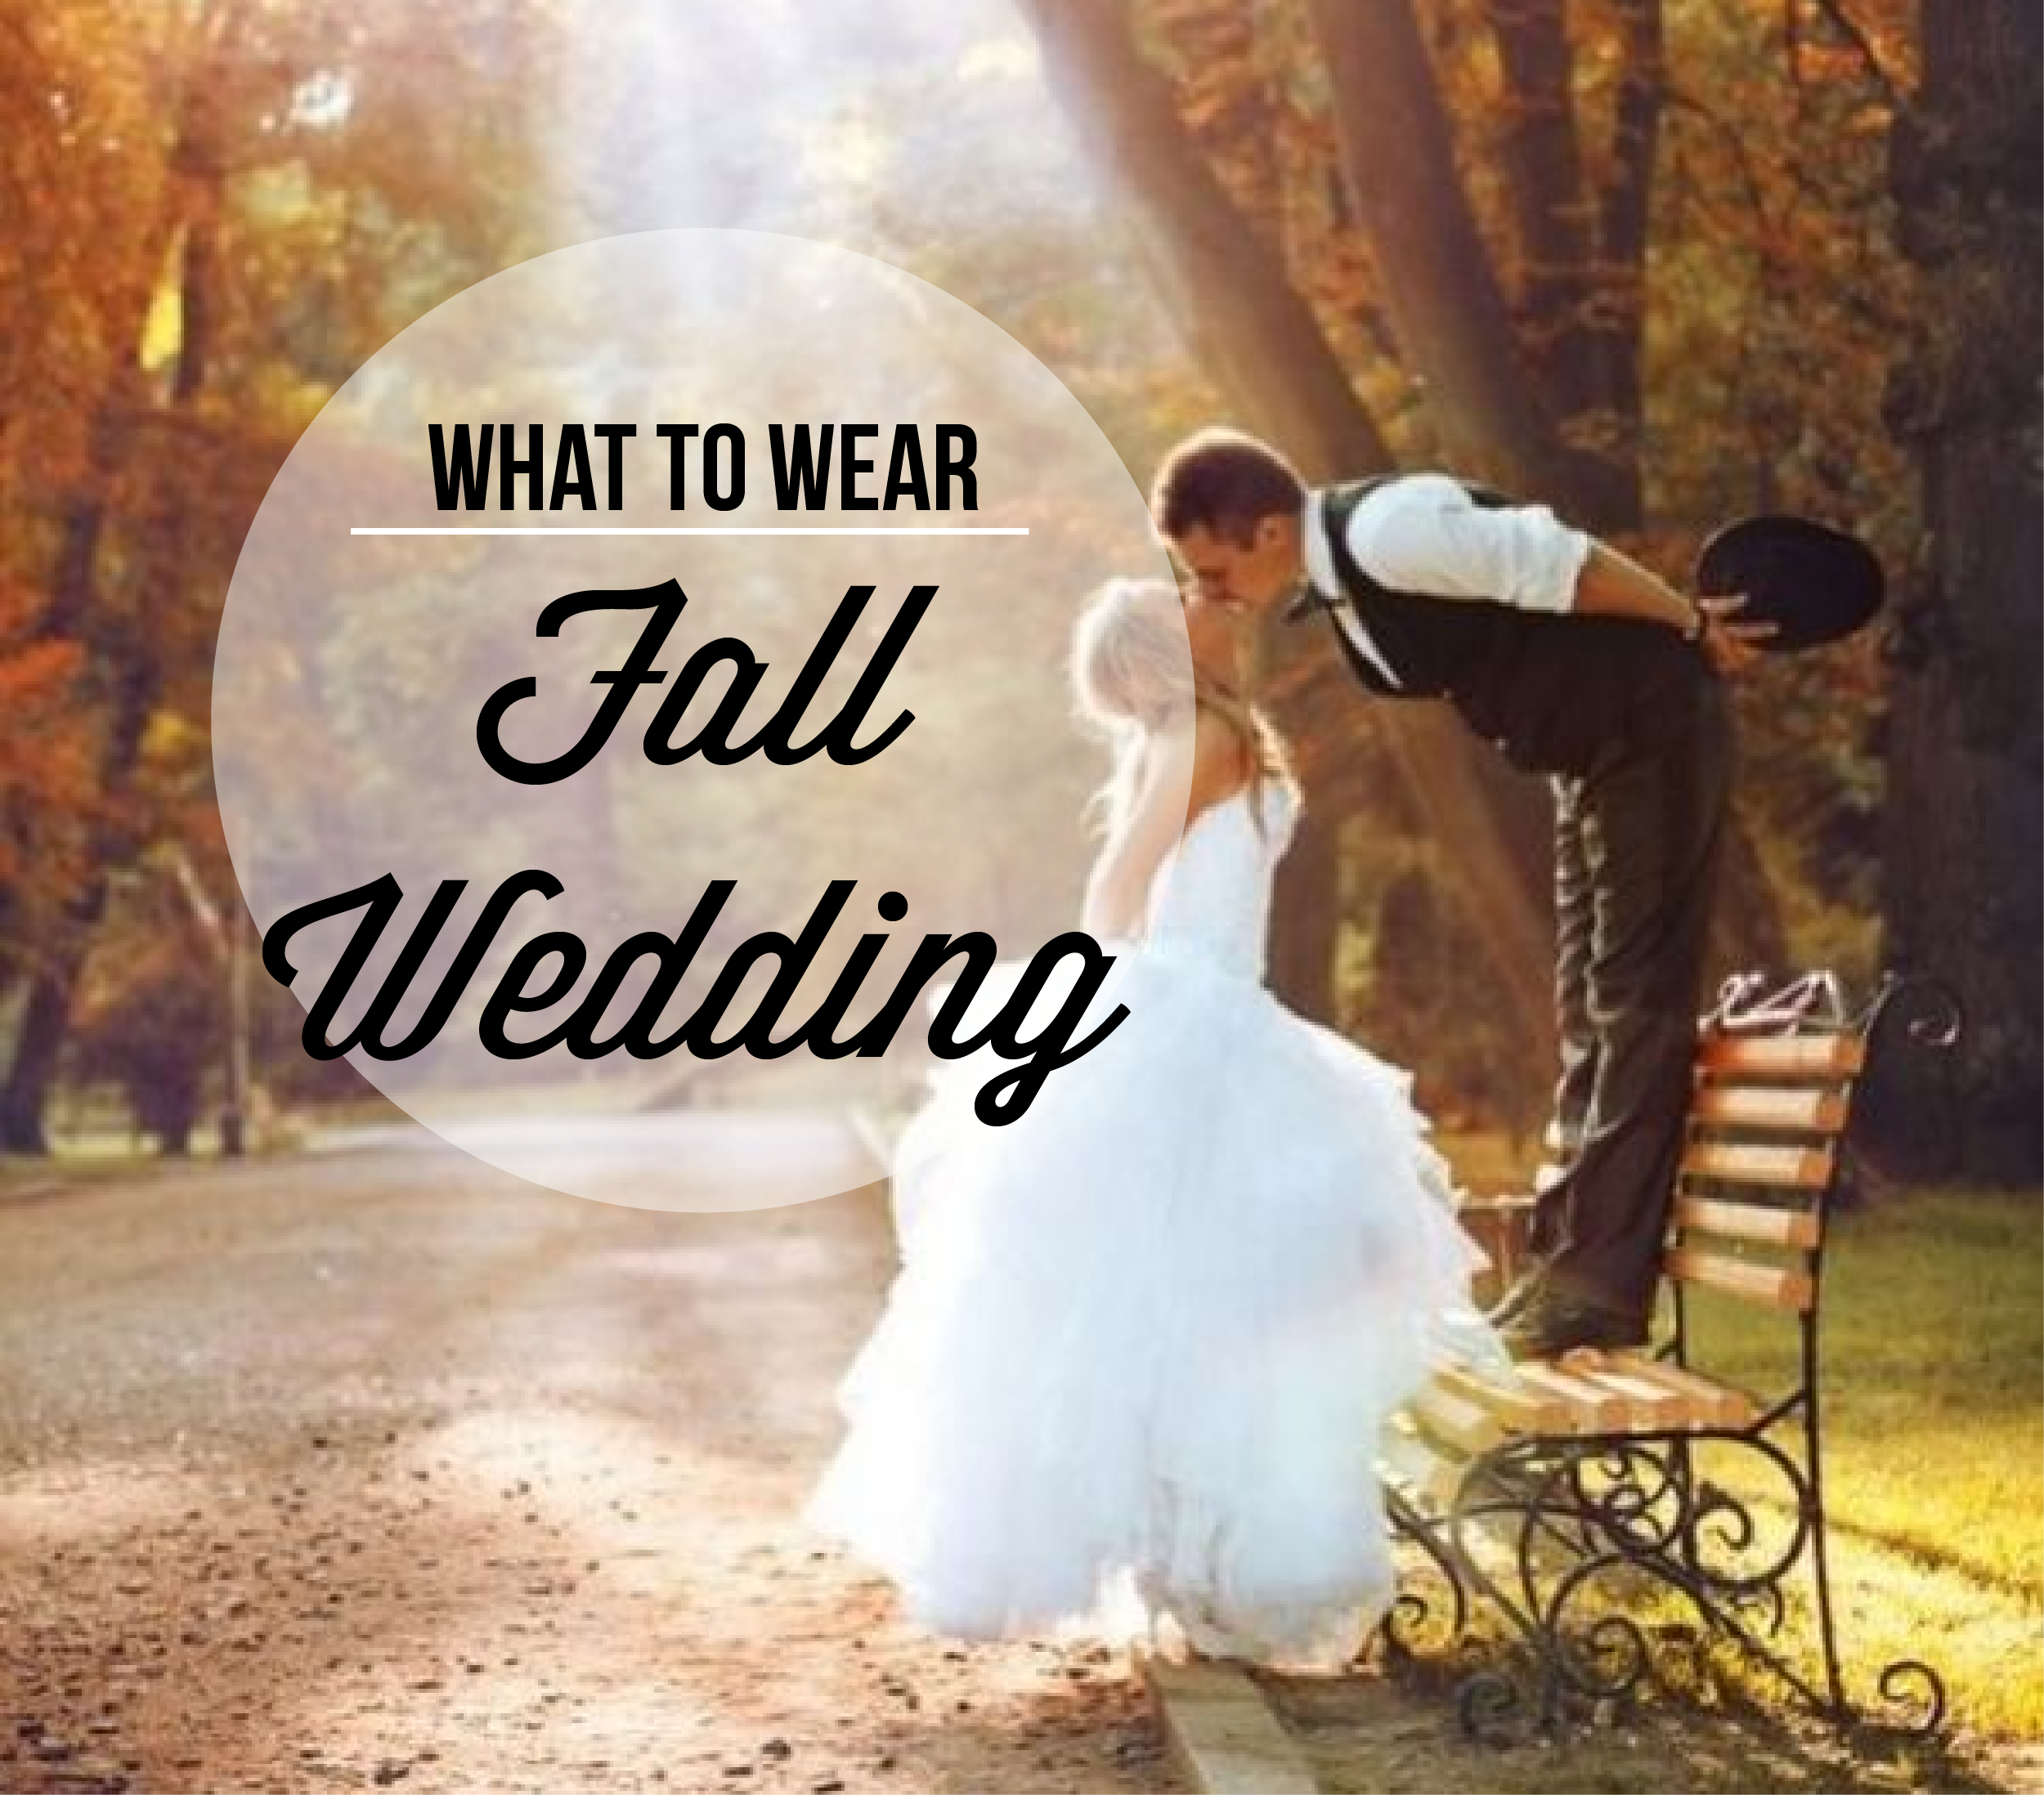 Dress to wear to a fall wedding  what to wear to a fall wedding  Fashion  Pinterest  Wedding wear